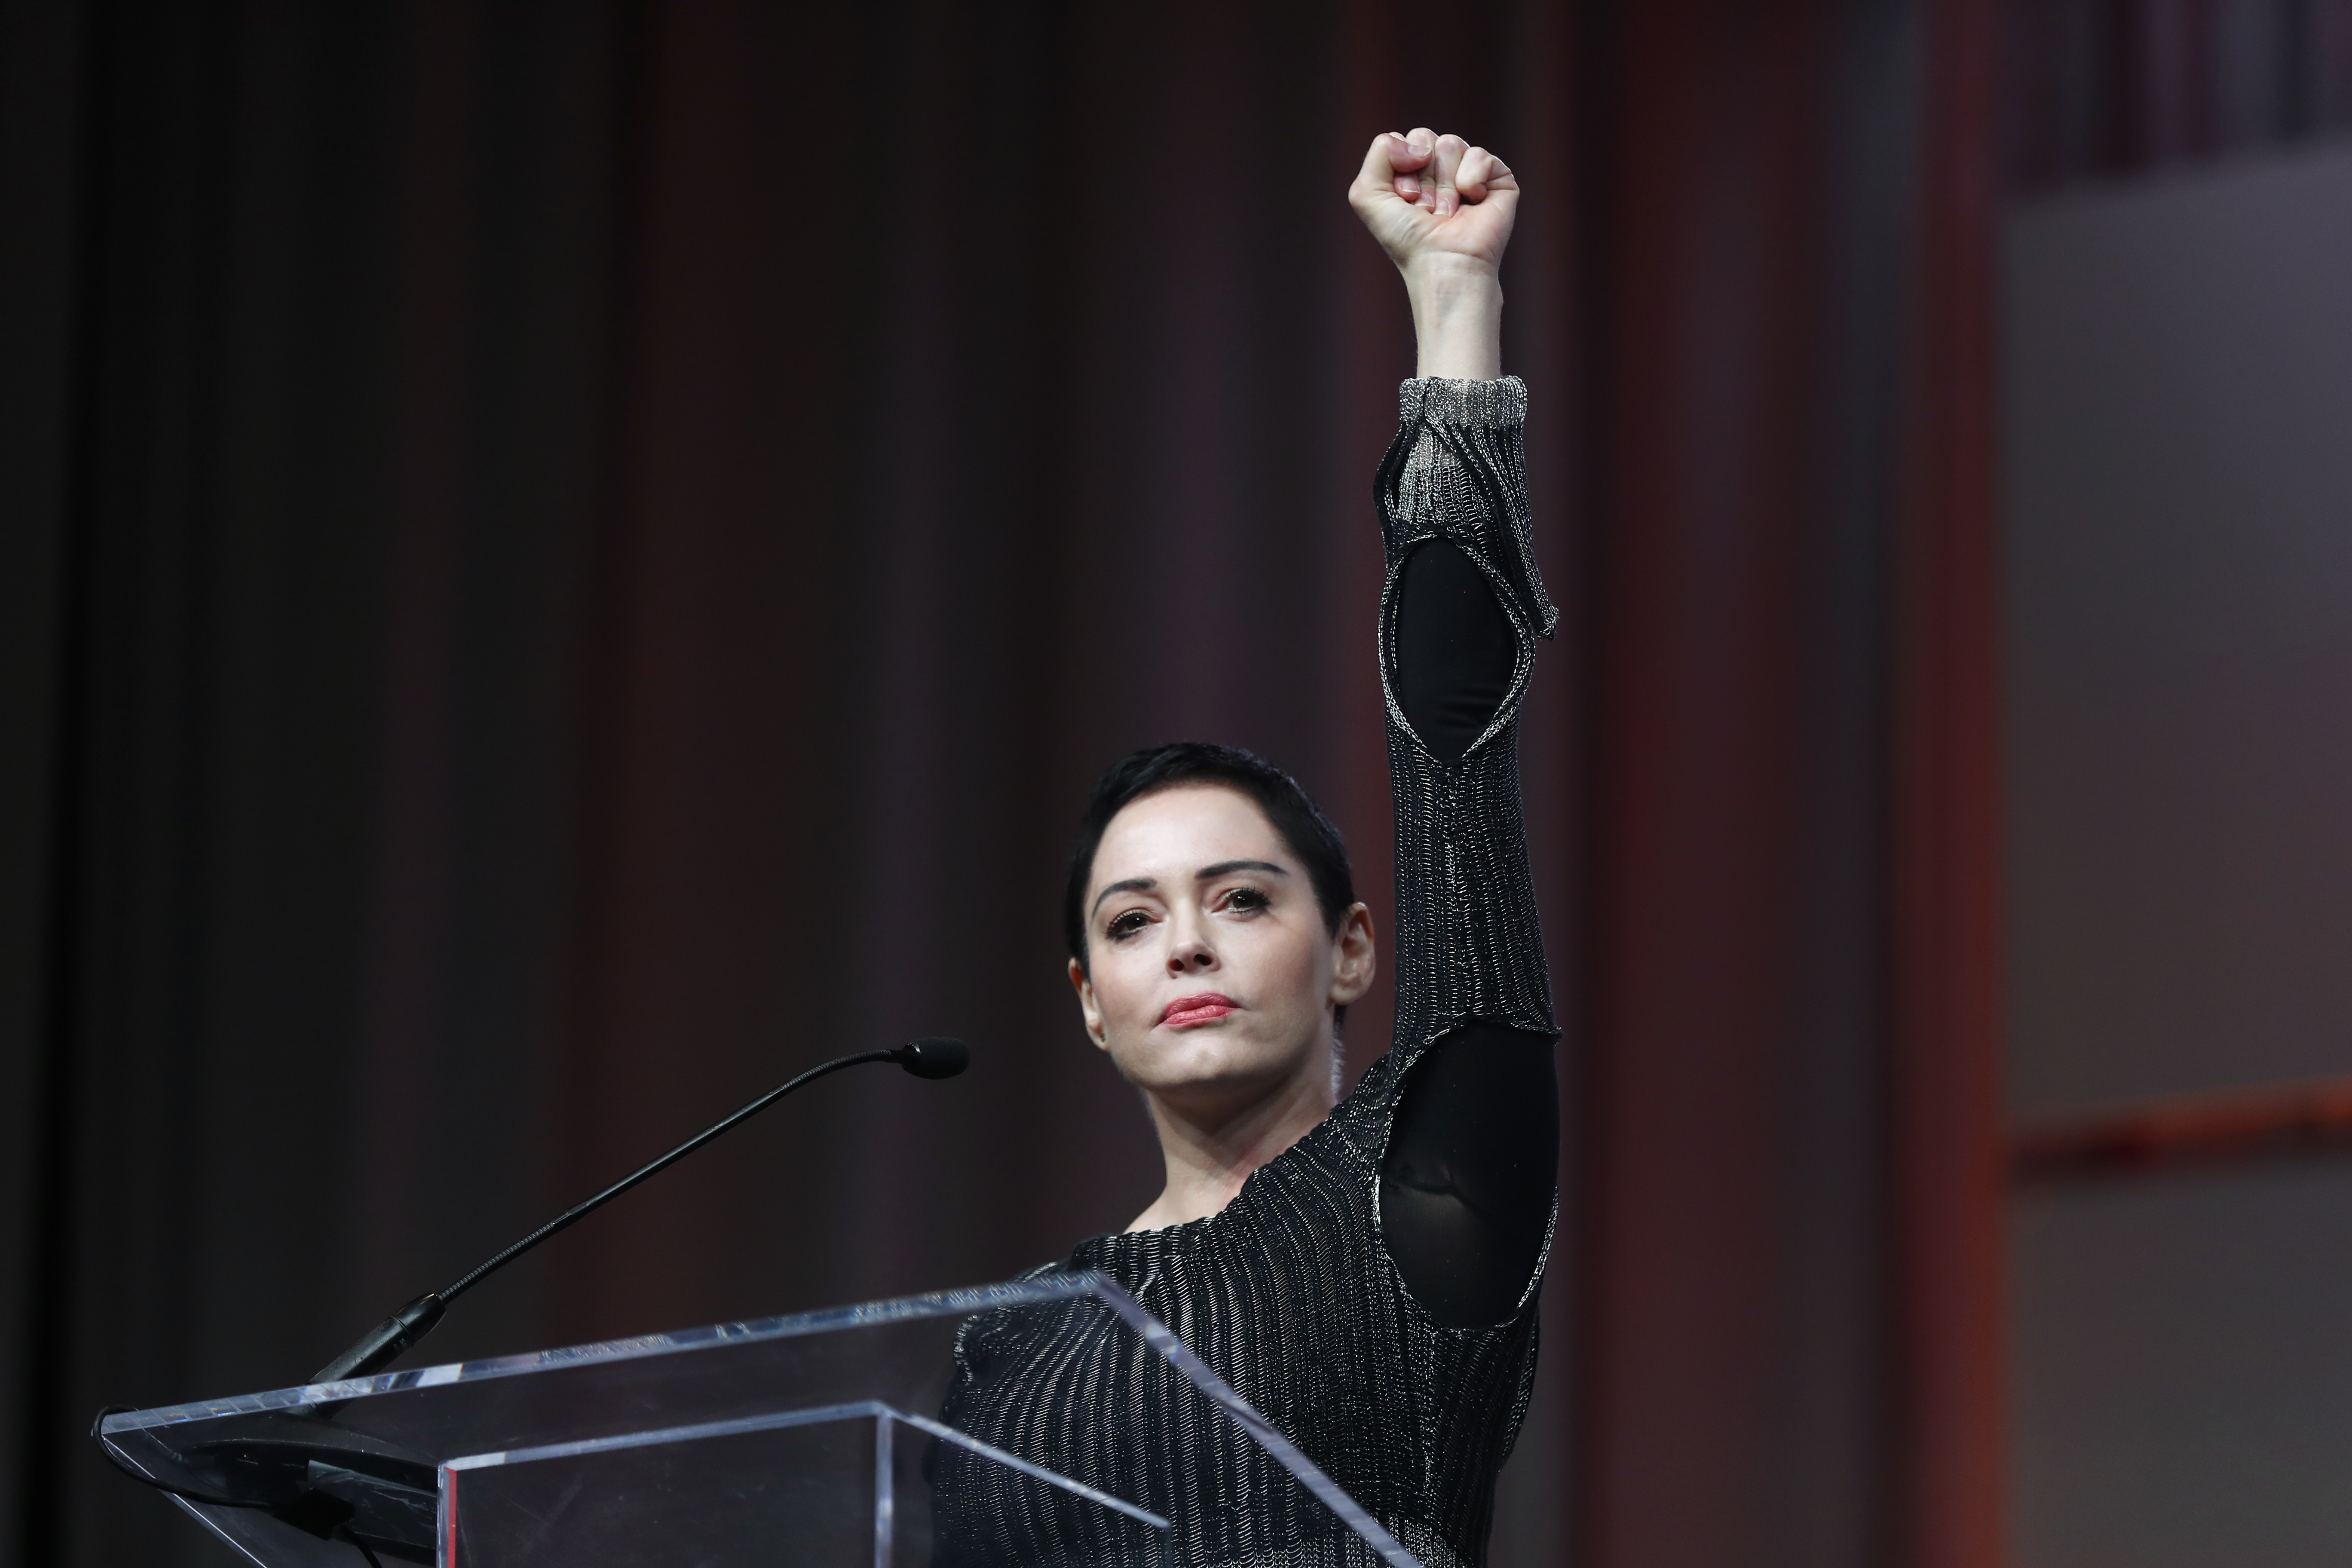 Actress Rose McGowan speaks at the inaugural Women's Convention in Detroit on Oct. 27, 2017. McGowan recently went public with her allegation that film company co-founder Harvey Weinstein raped her.